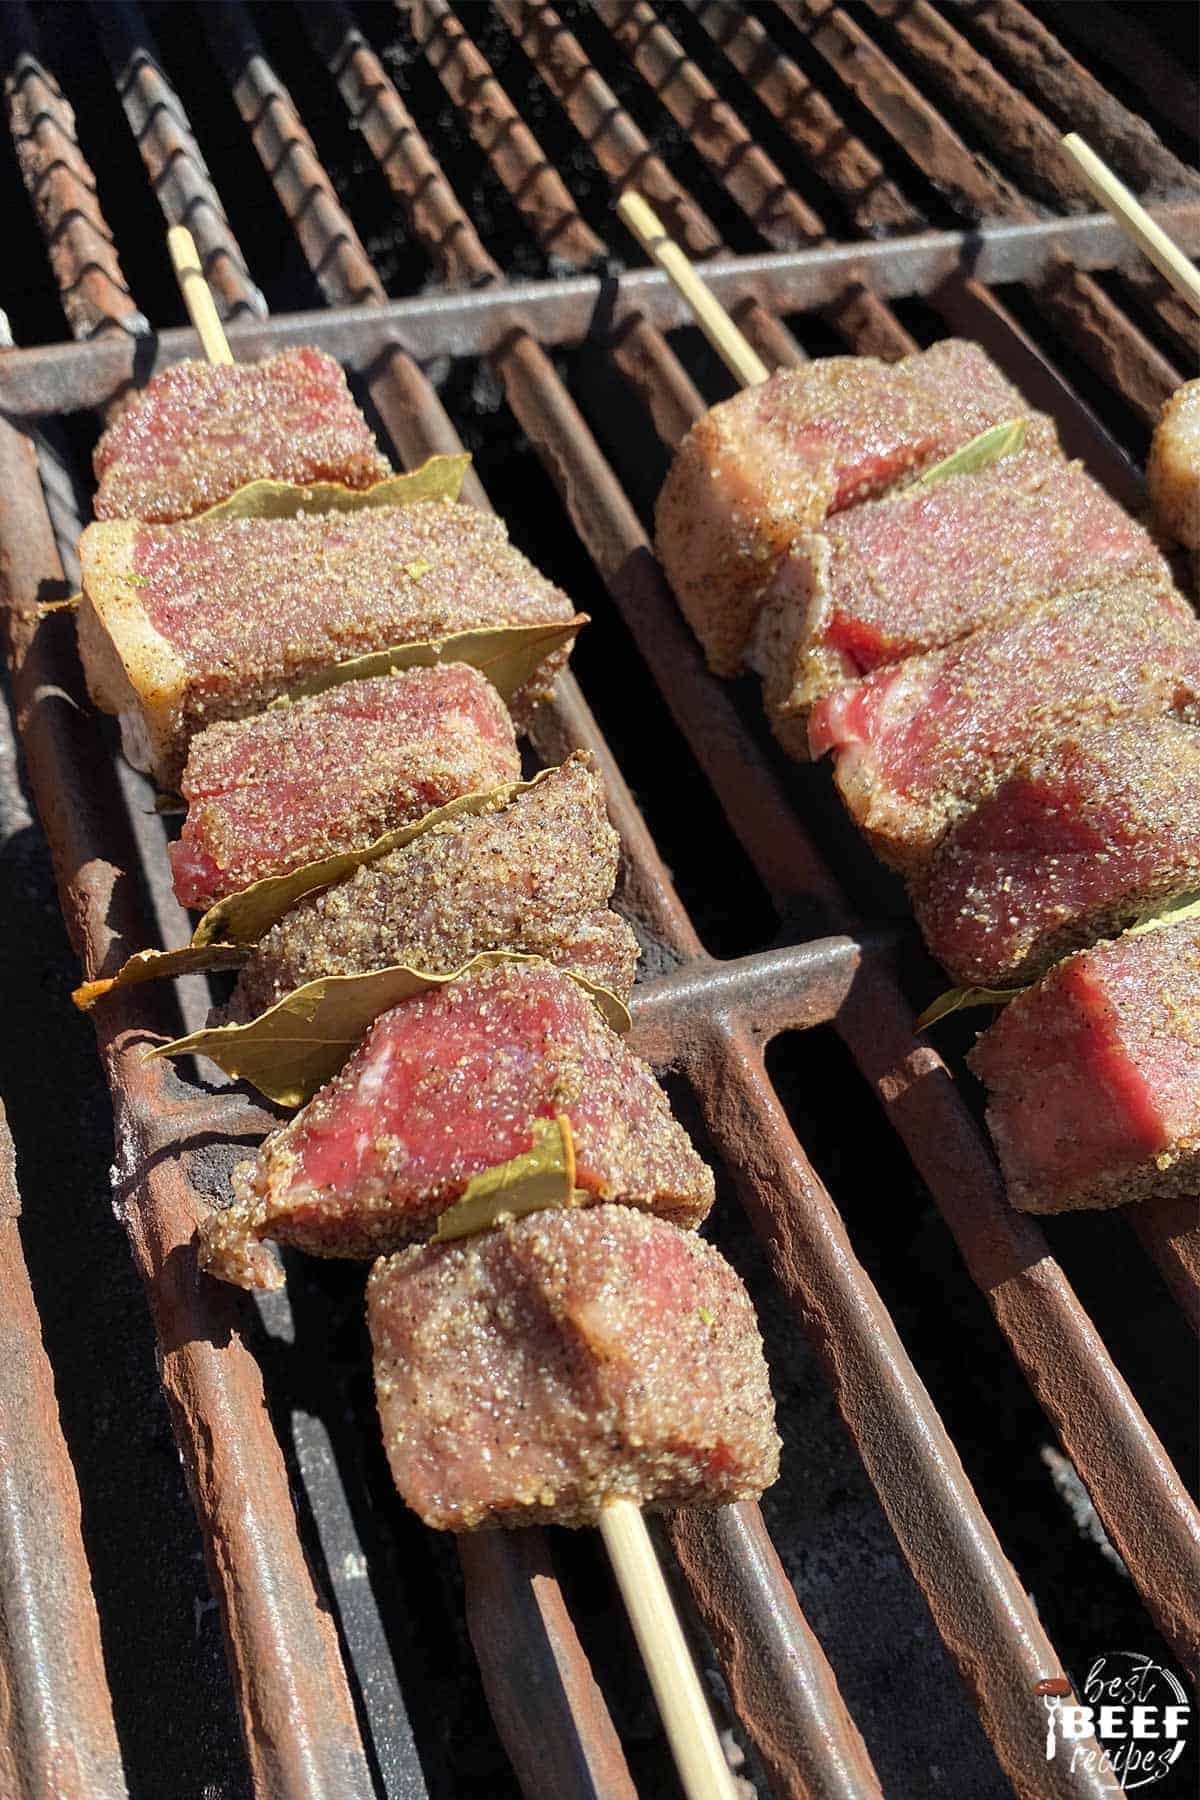 Beef kabobs on the grill cooking